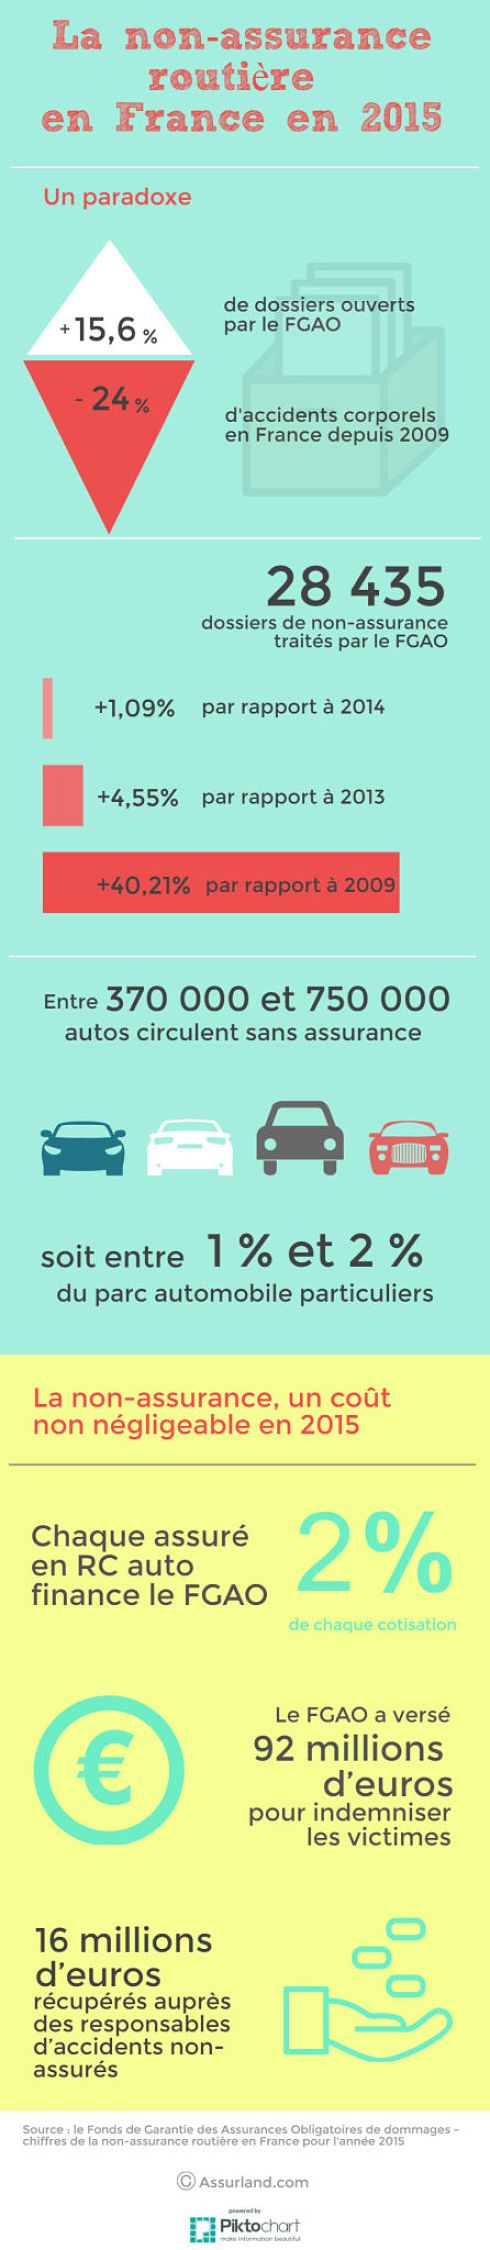 infographie-non-assurance-france-2015